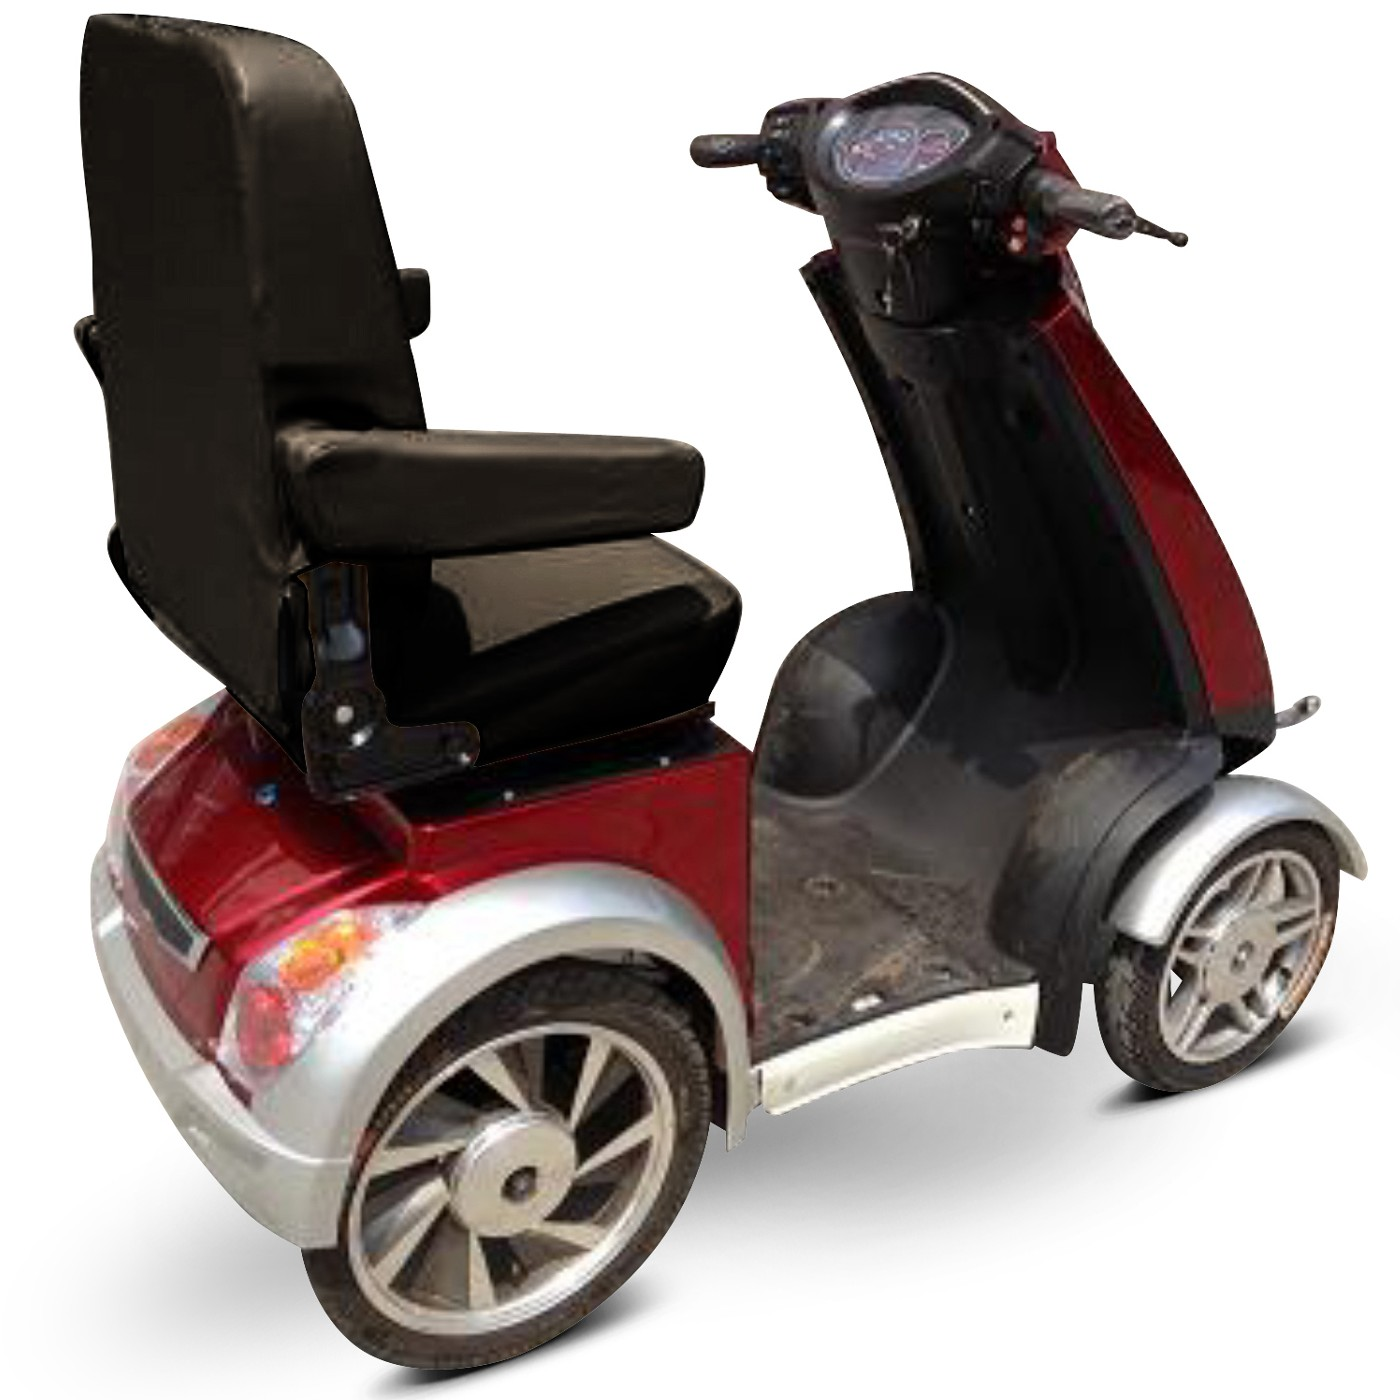 Ew72 4 Wheel Mobility Scooter